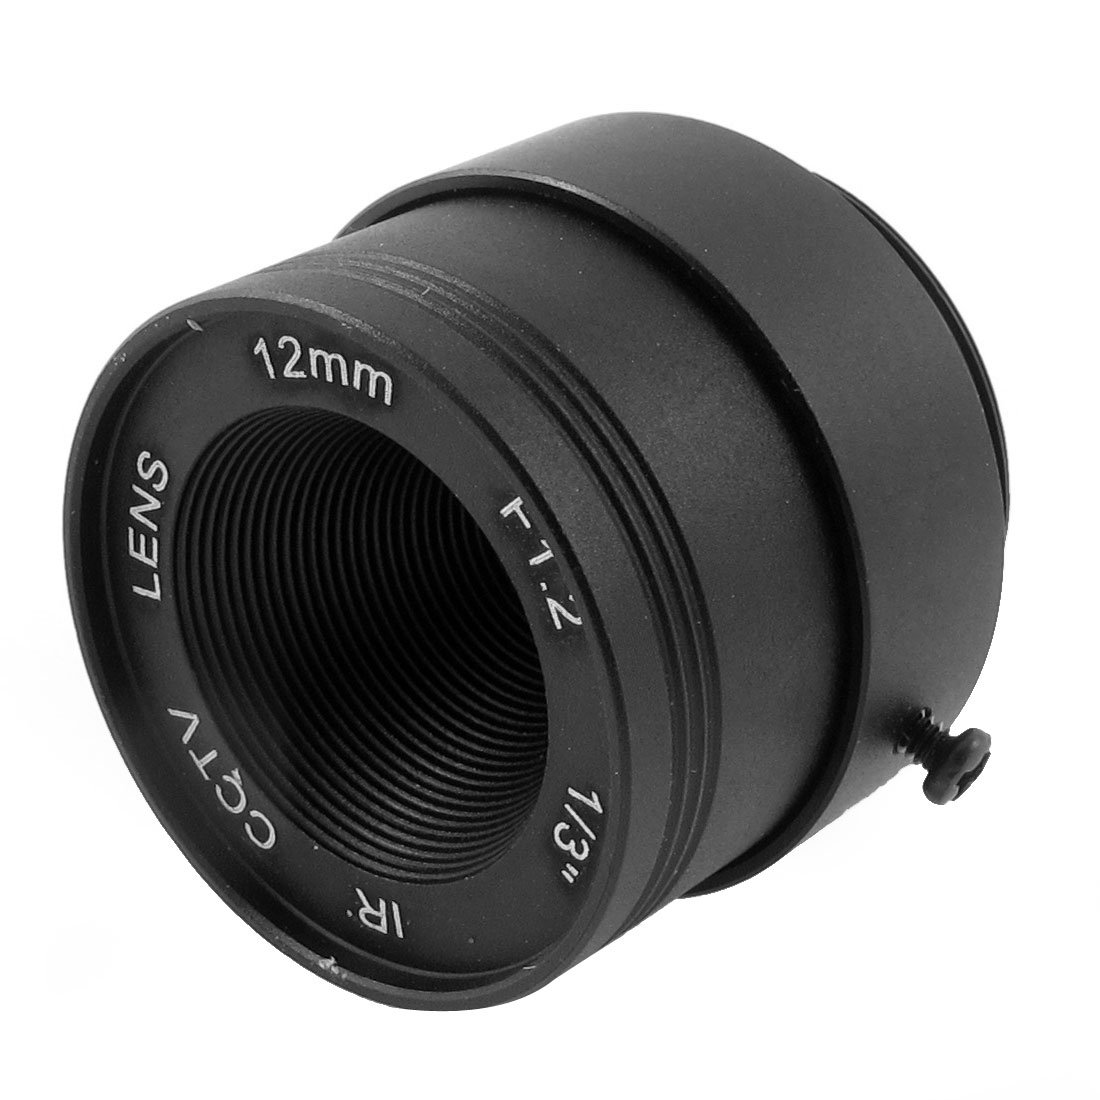 uxcell 12mm F1.2 1/3' CCTV IR Lens CS Mount for Security Dome Ip Camera a15031800ux0035